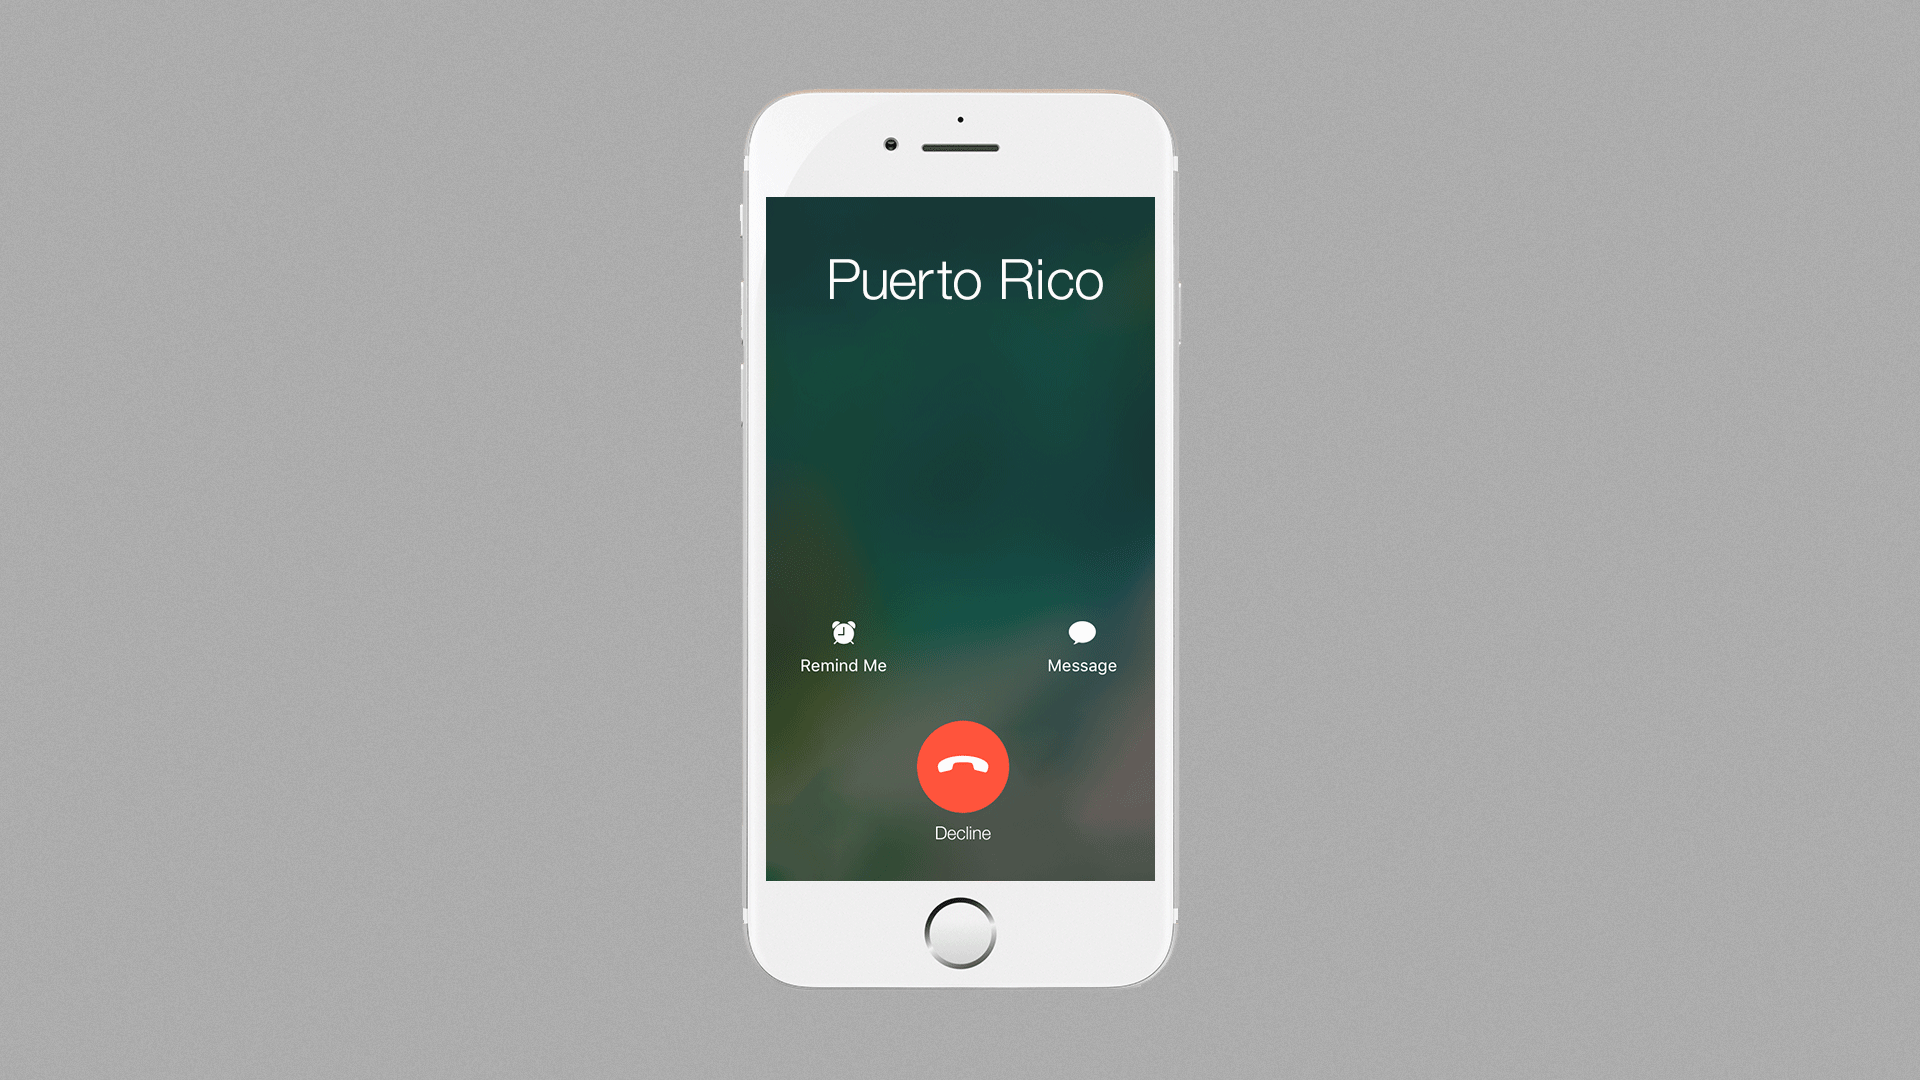 Illustration of an iPhone receiving a call from Puerto Rico, the only option is to decline the call.